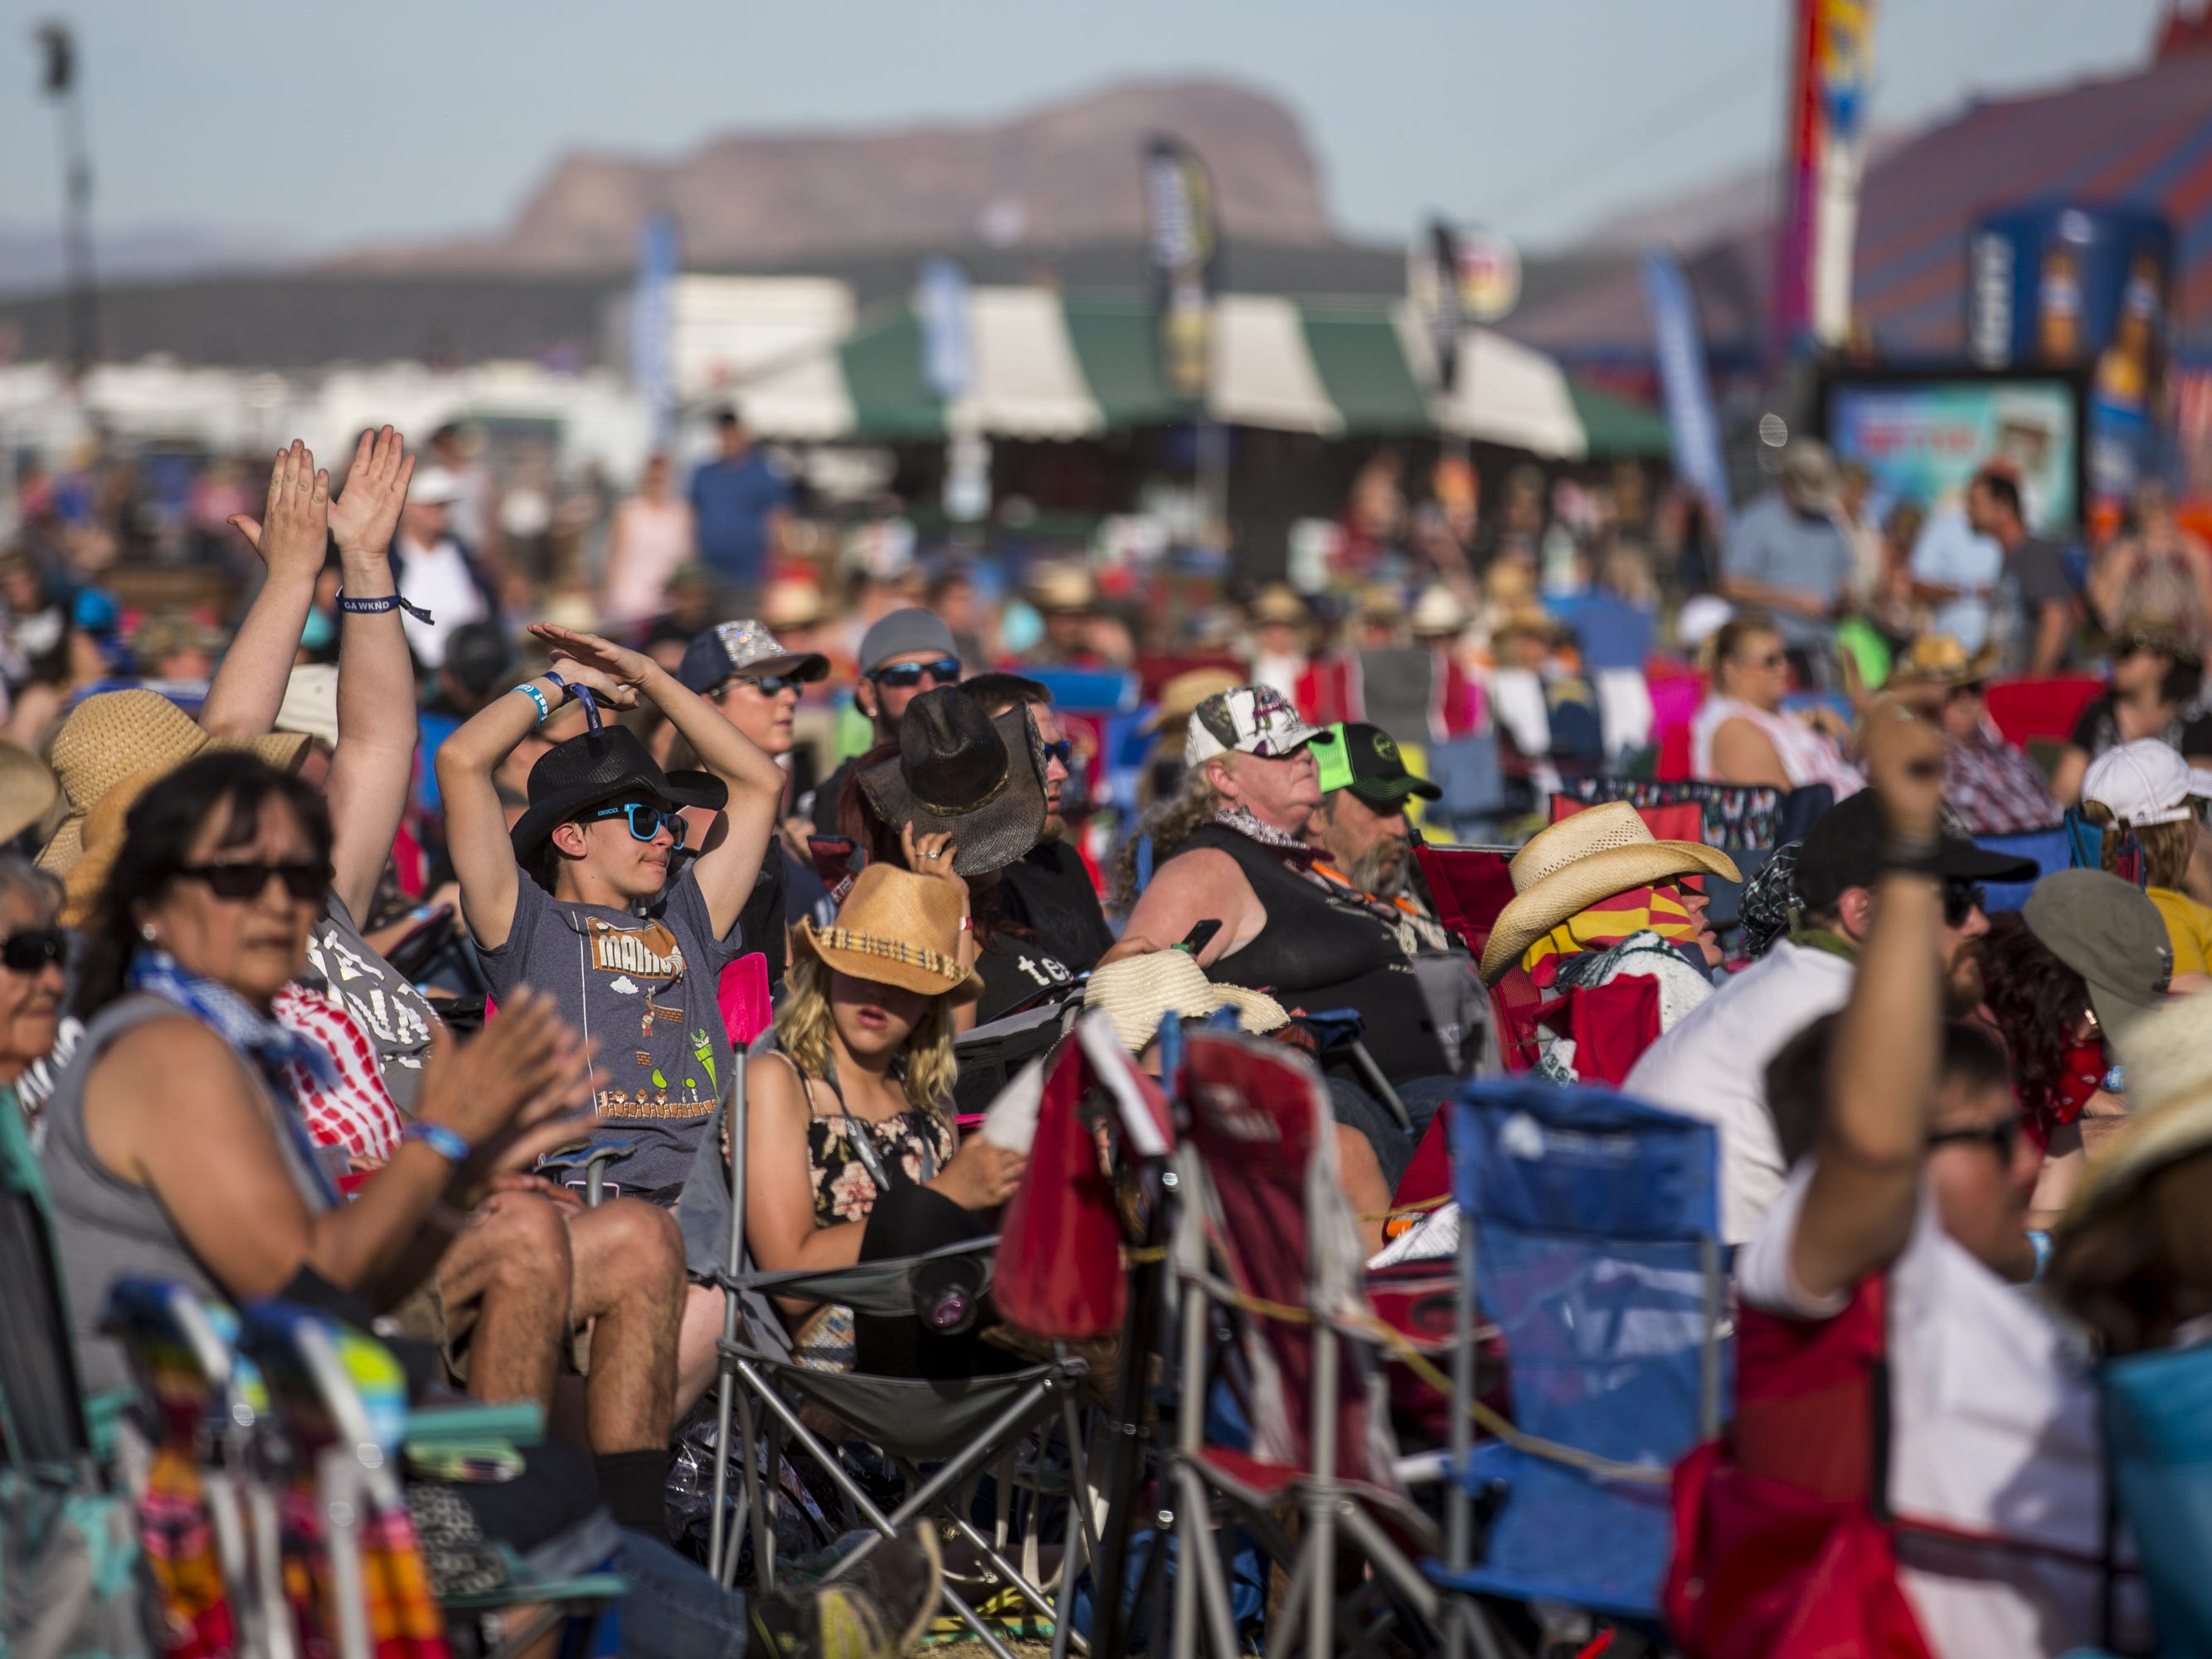 Festival-goers watch Restless Heart perform on Sunday, April 14, 2019, during Day 4 of Country Thunder Arizona in Florence, Ariz.